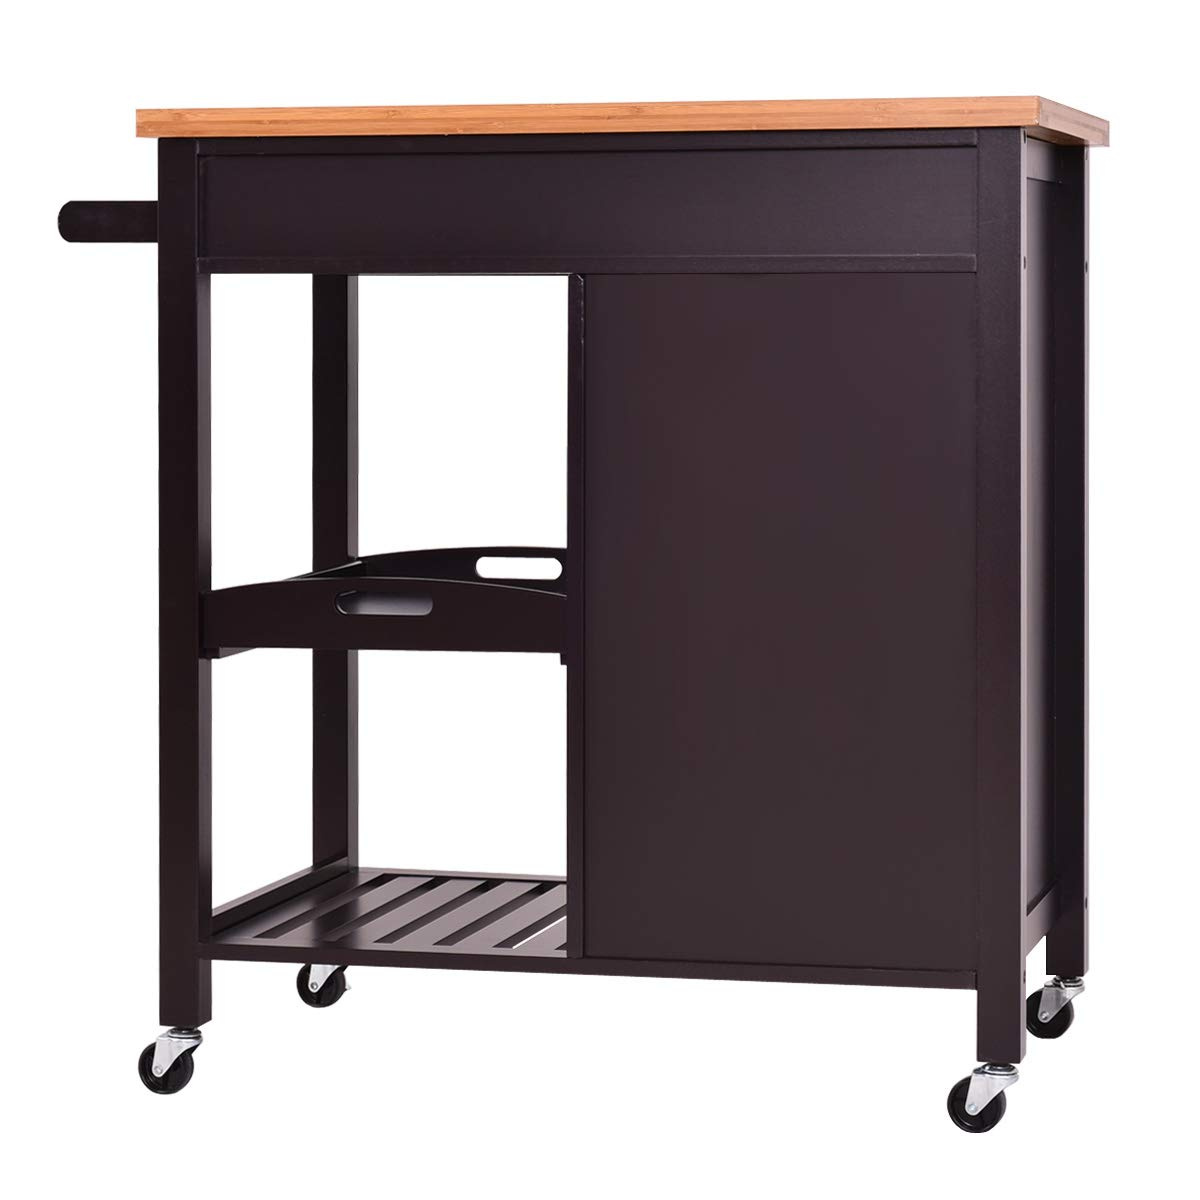 Giantex Kitchen Trolley Cart Wood Rolling Island Cart Home Restaurant Kitchen Dining Room Serving Utility Cart w/Bamboo Top Storage Cabinet Bigger Drawer Removable Tray Shelf, Brown by Giantex (Image #8)